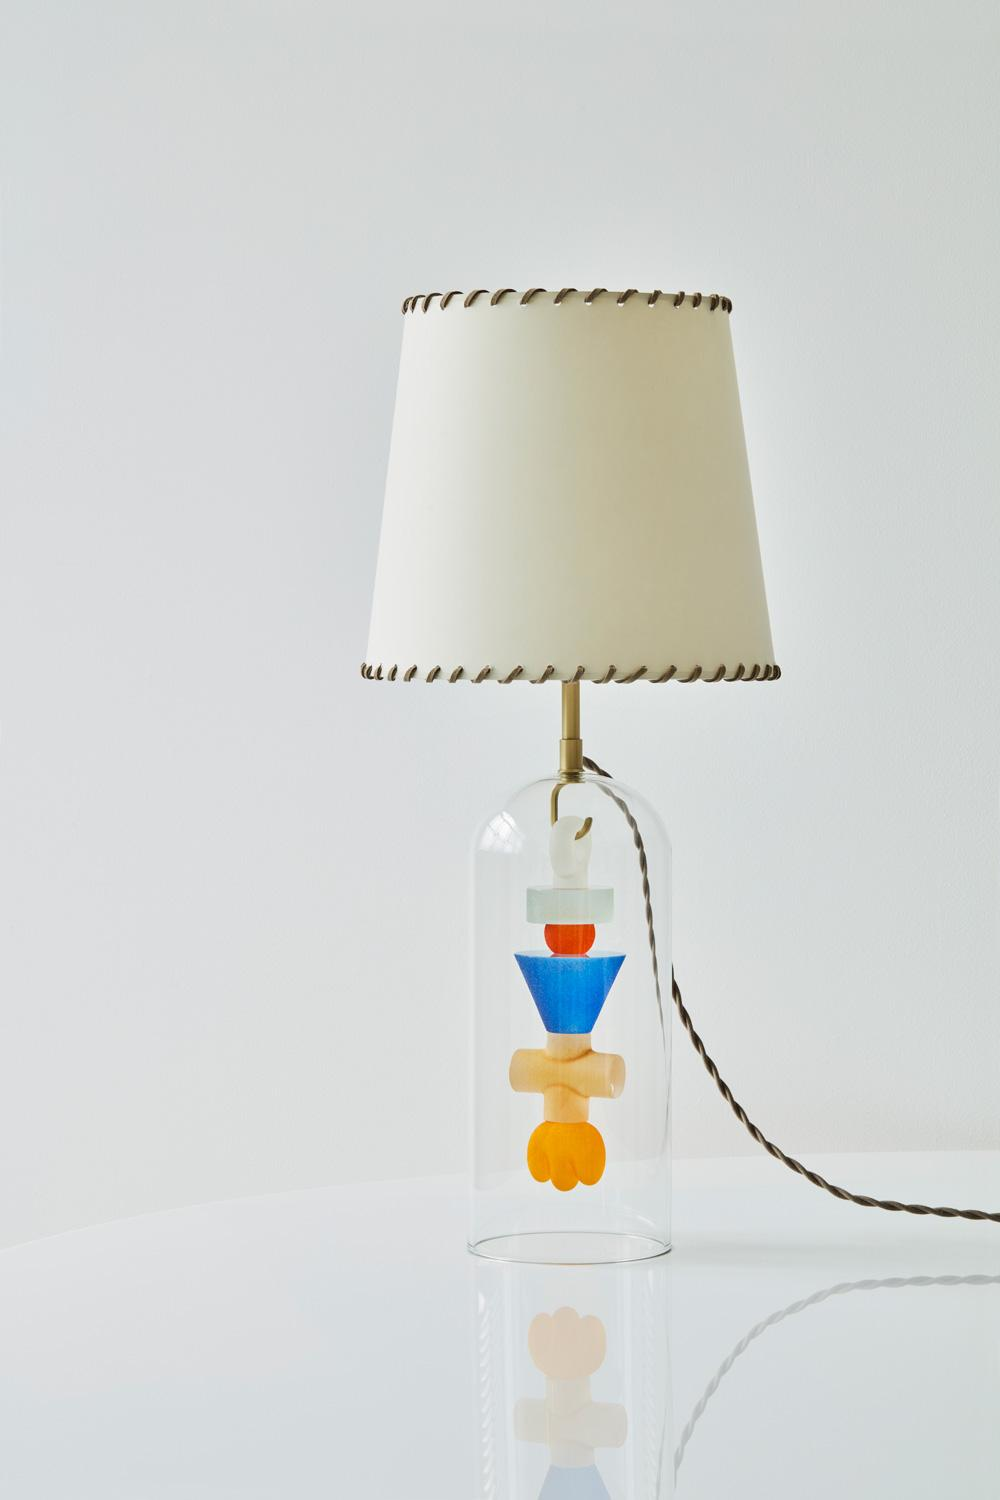 The 'Totem' lamp table with its colorful confections.